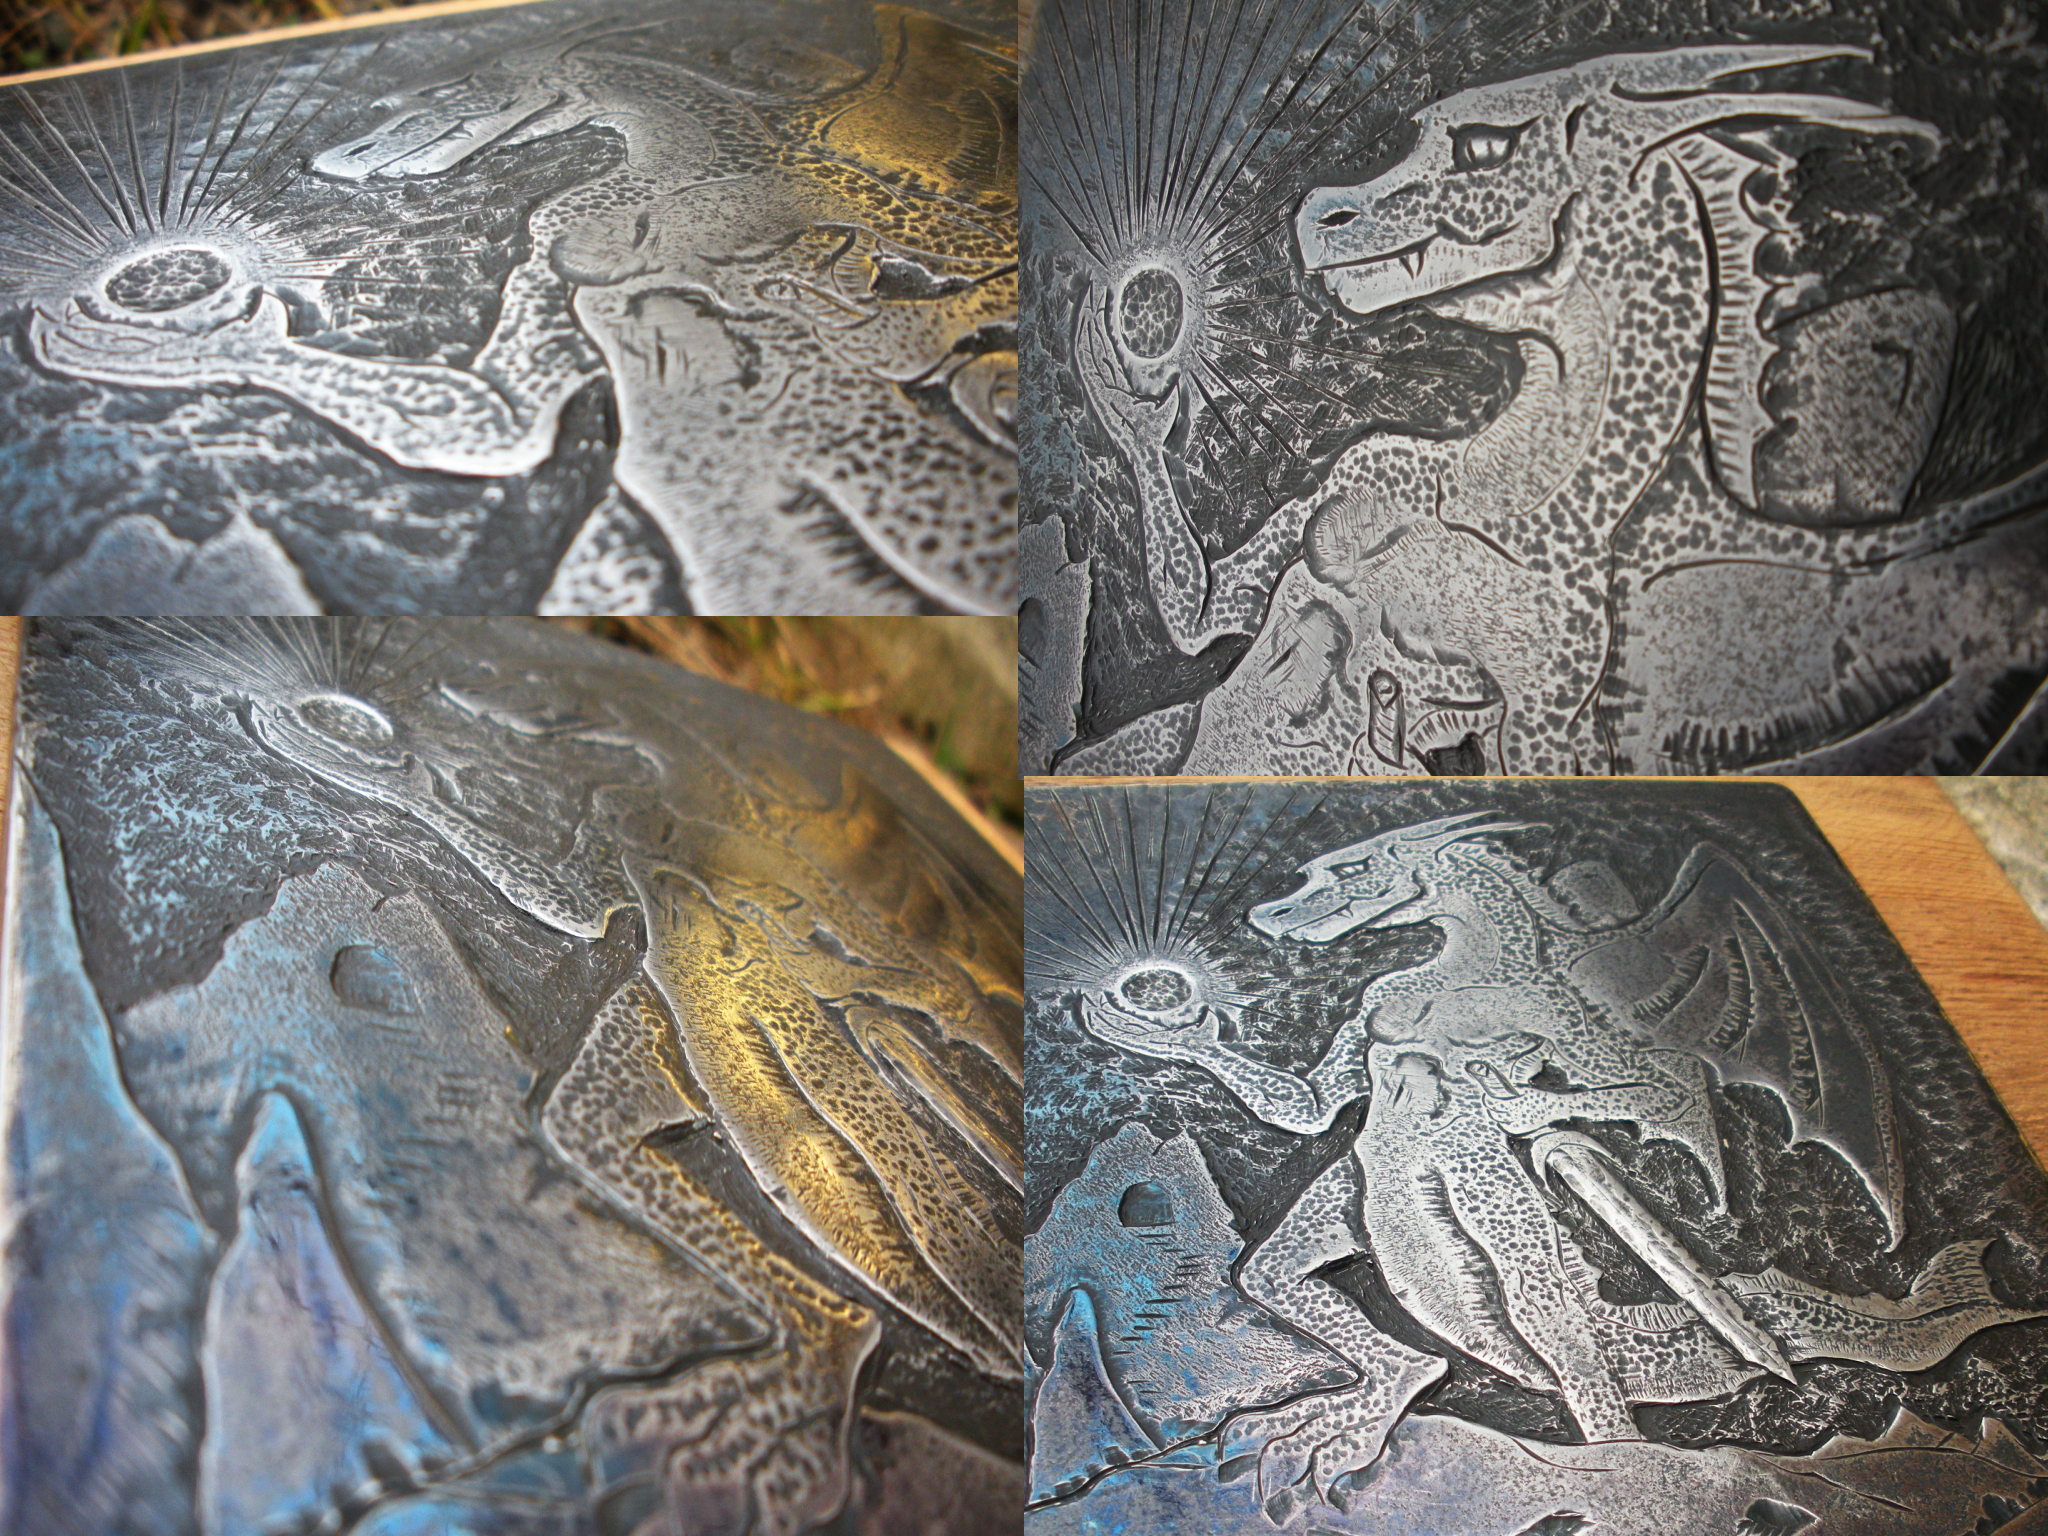 Mountain Dragon Engraving - more angles by JoeWere